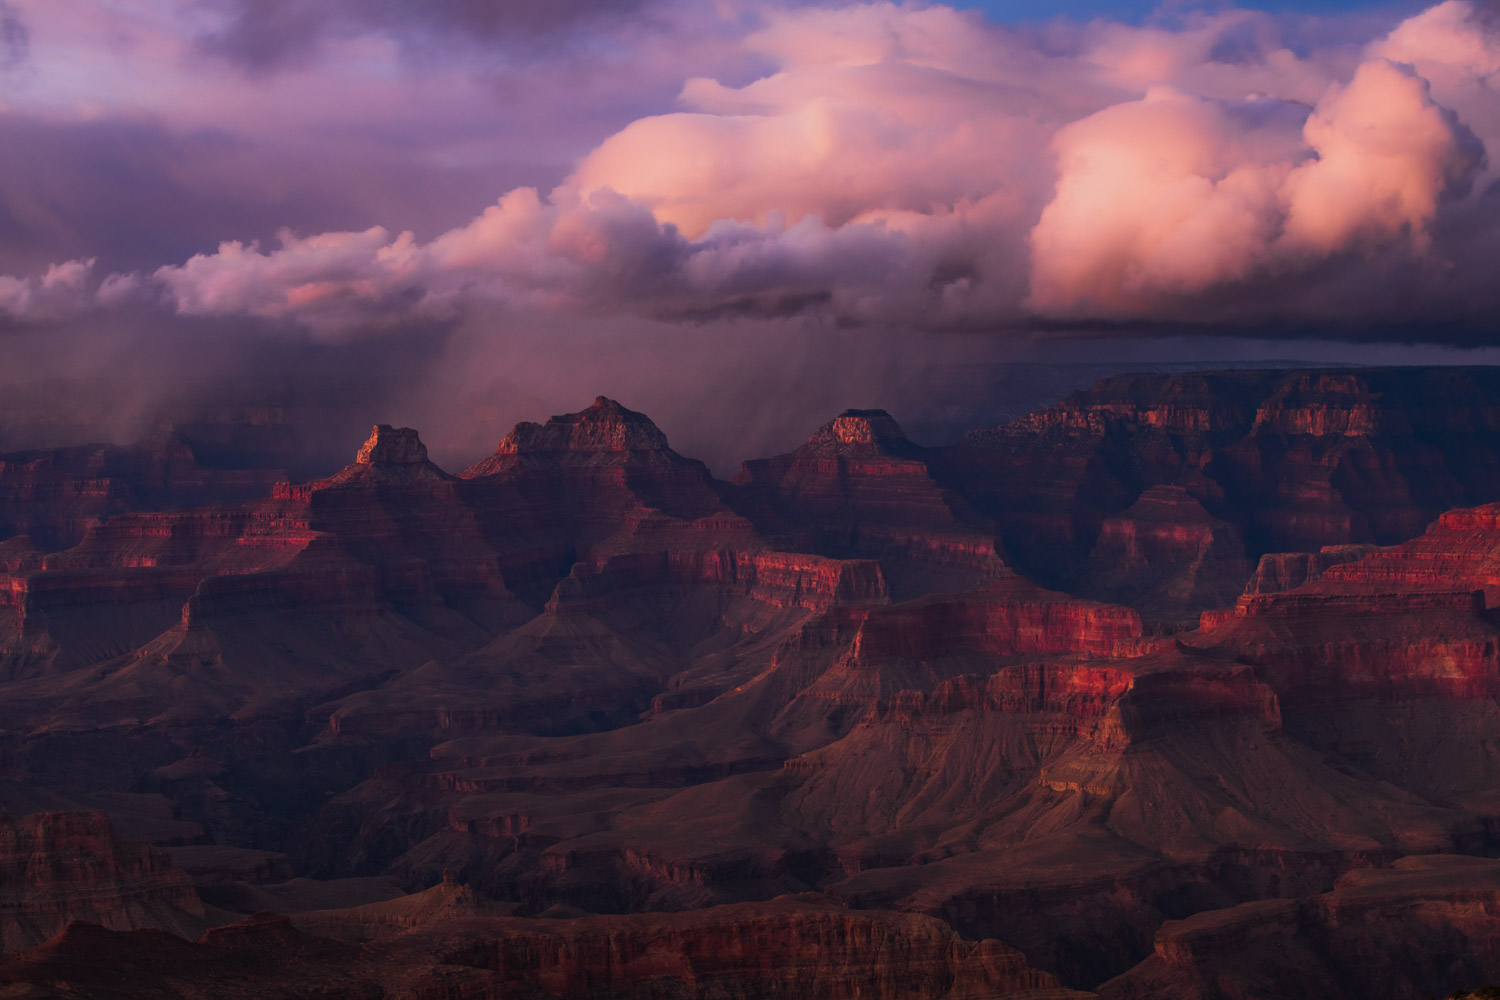 Limited Edition of 50 In the winter of 2018, I took an extended trip to the Colorado Plateau in hopes of chasing winter storms...